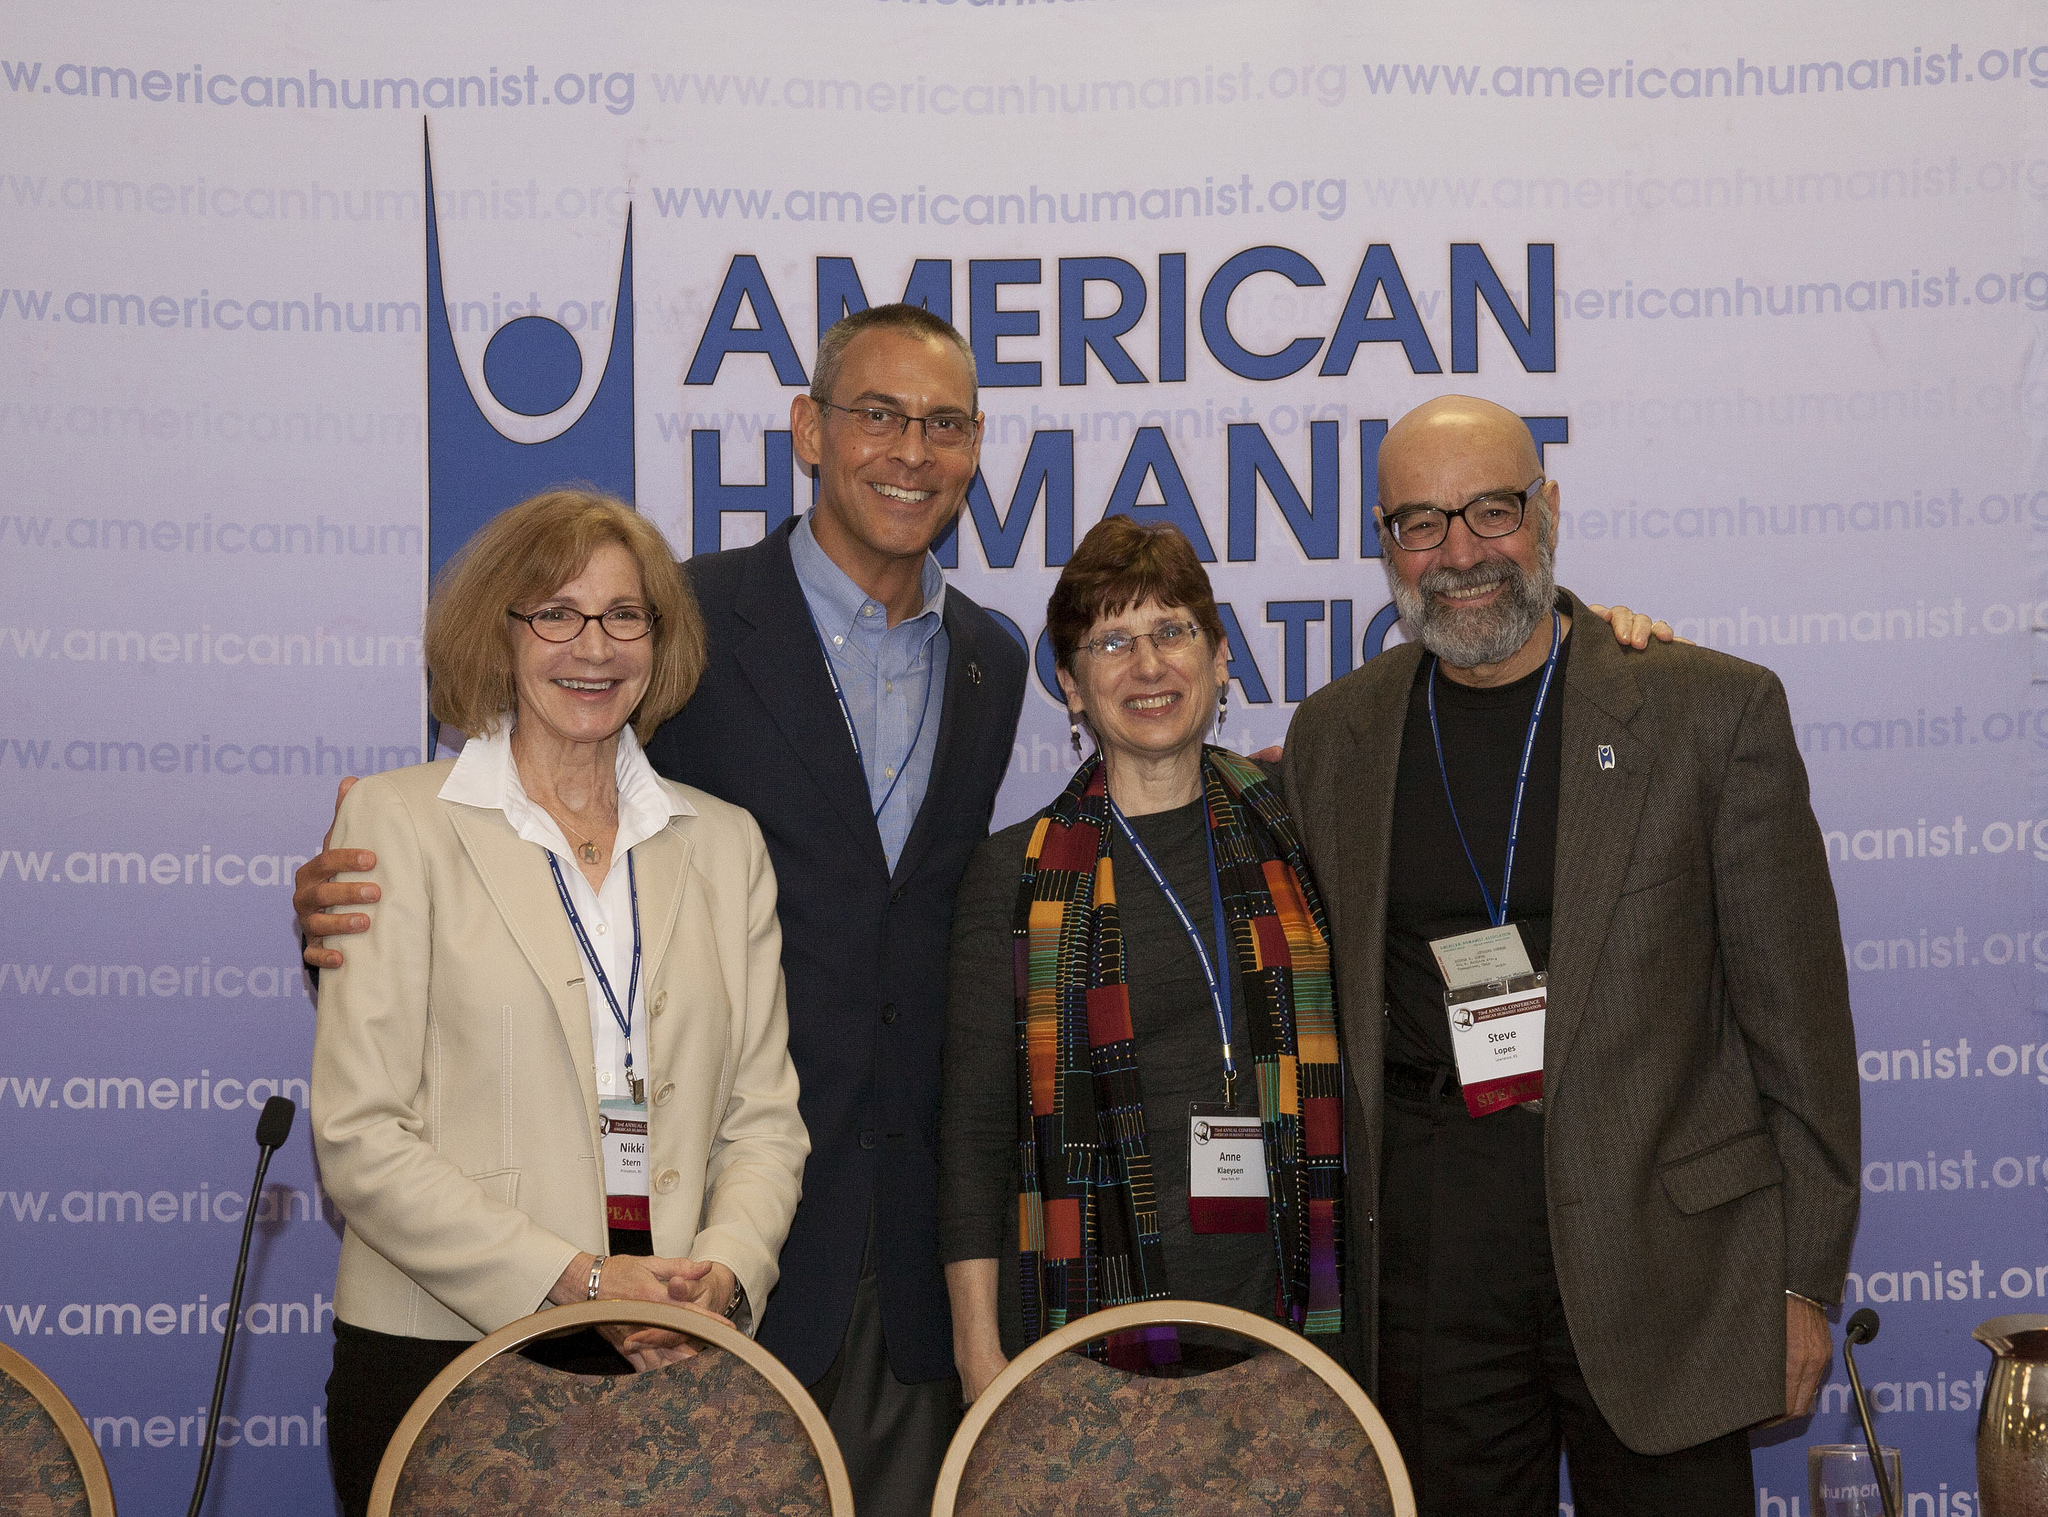 Members of Organized Humanist Response to Crises panel